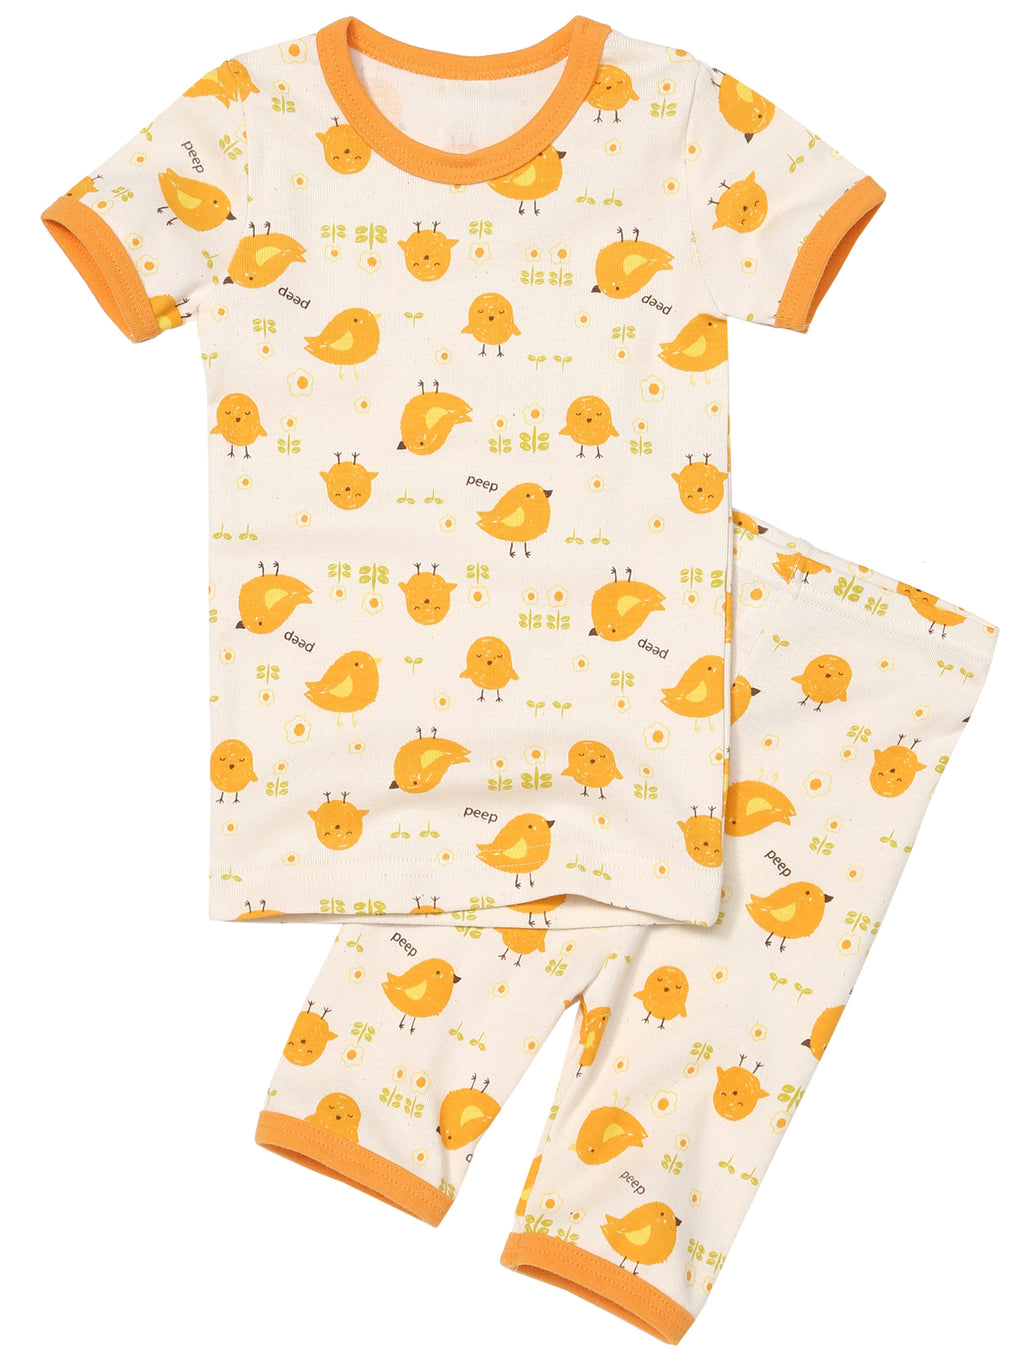 Toddler Two-Piece Short Sleeve and Capri Bottom Pajama Set - HiOrganic